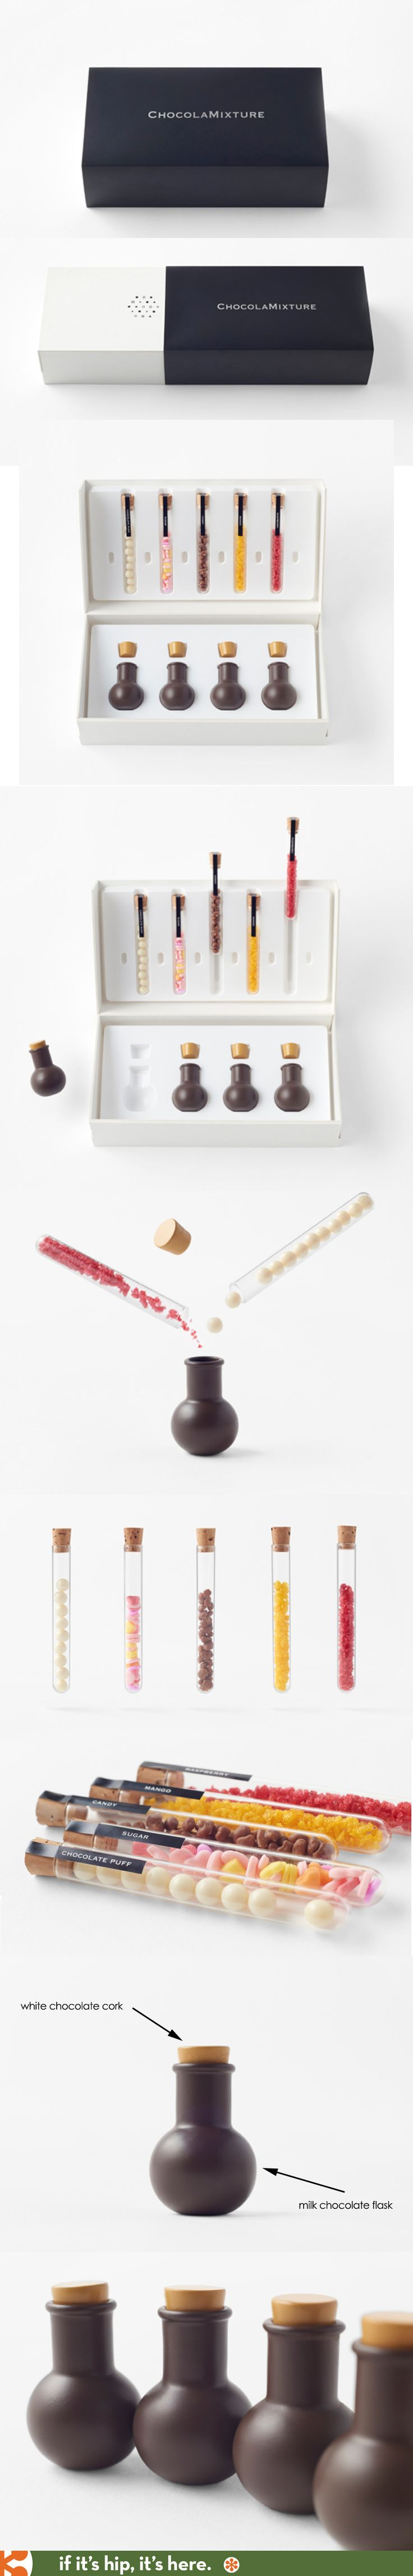 The nendo chocolamixture is a boxed set of chocolate flasks with white chocolate corks and 5 different flavours of candy packed in mini testubes with a unique texture. - if it's hip, it's here